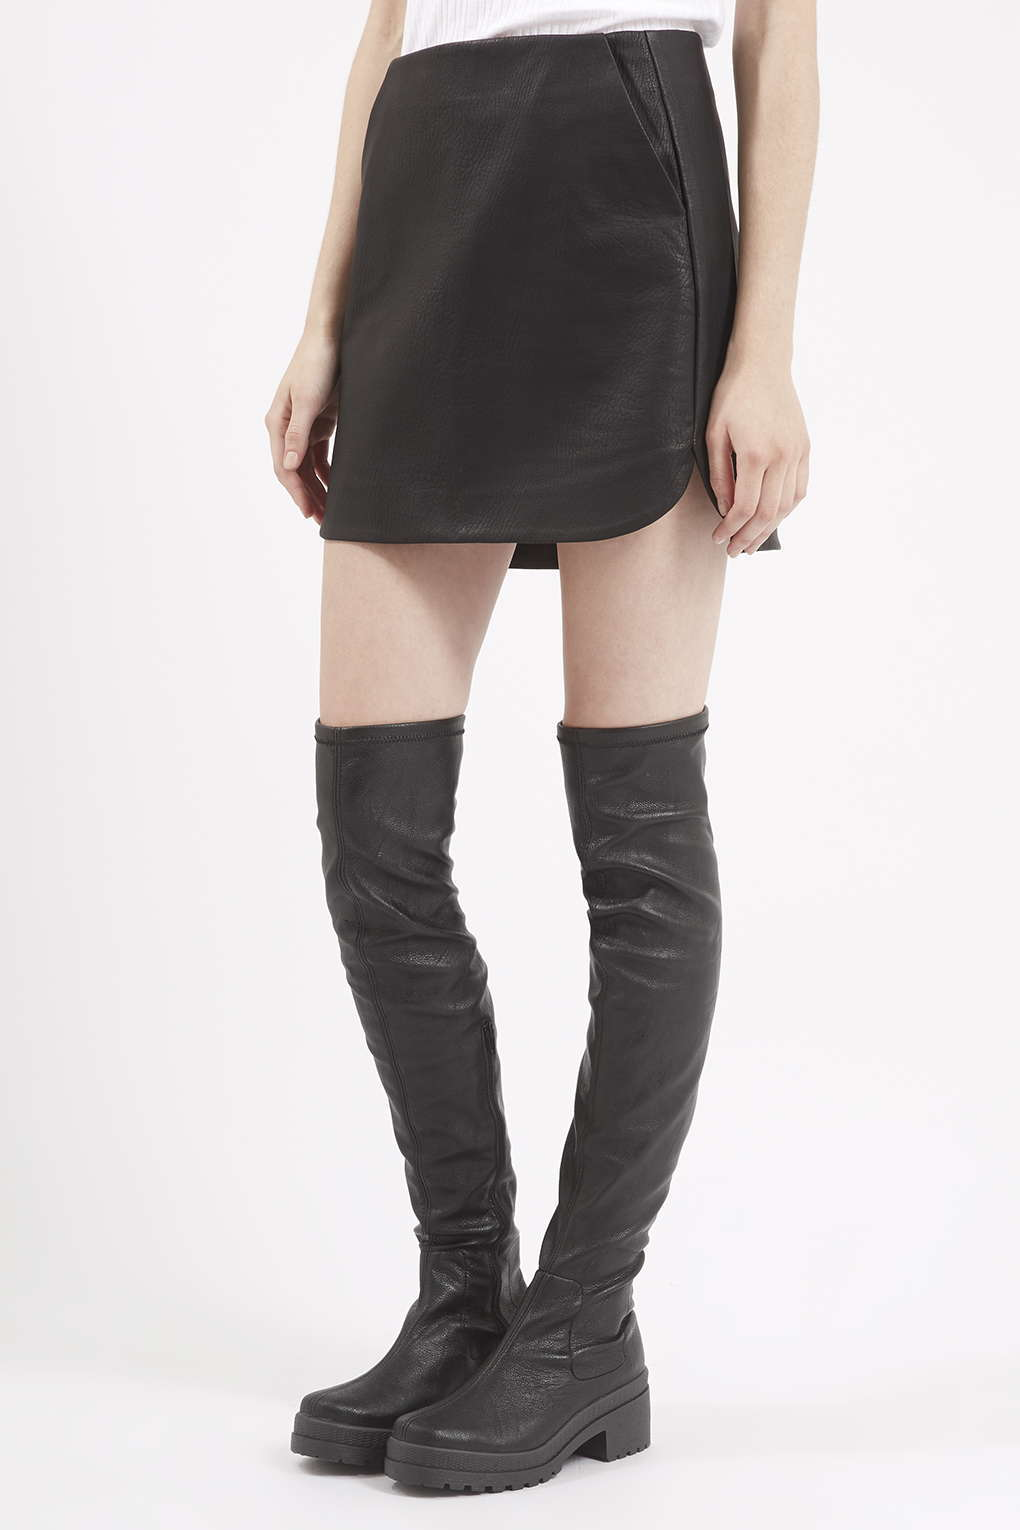 Suede Over The Knee Boots Flat QohCb2kF